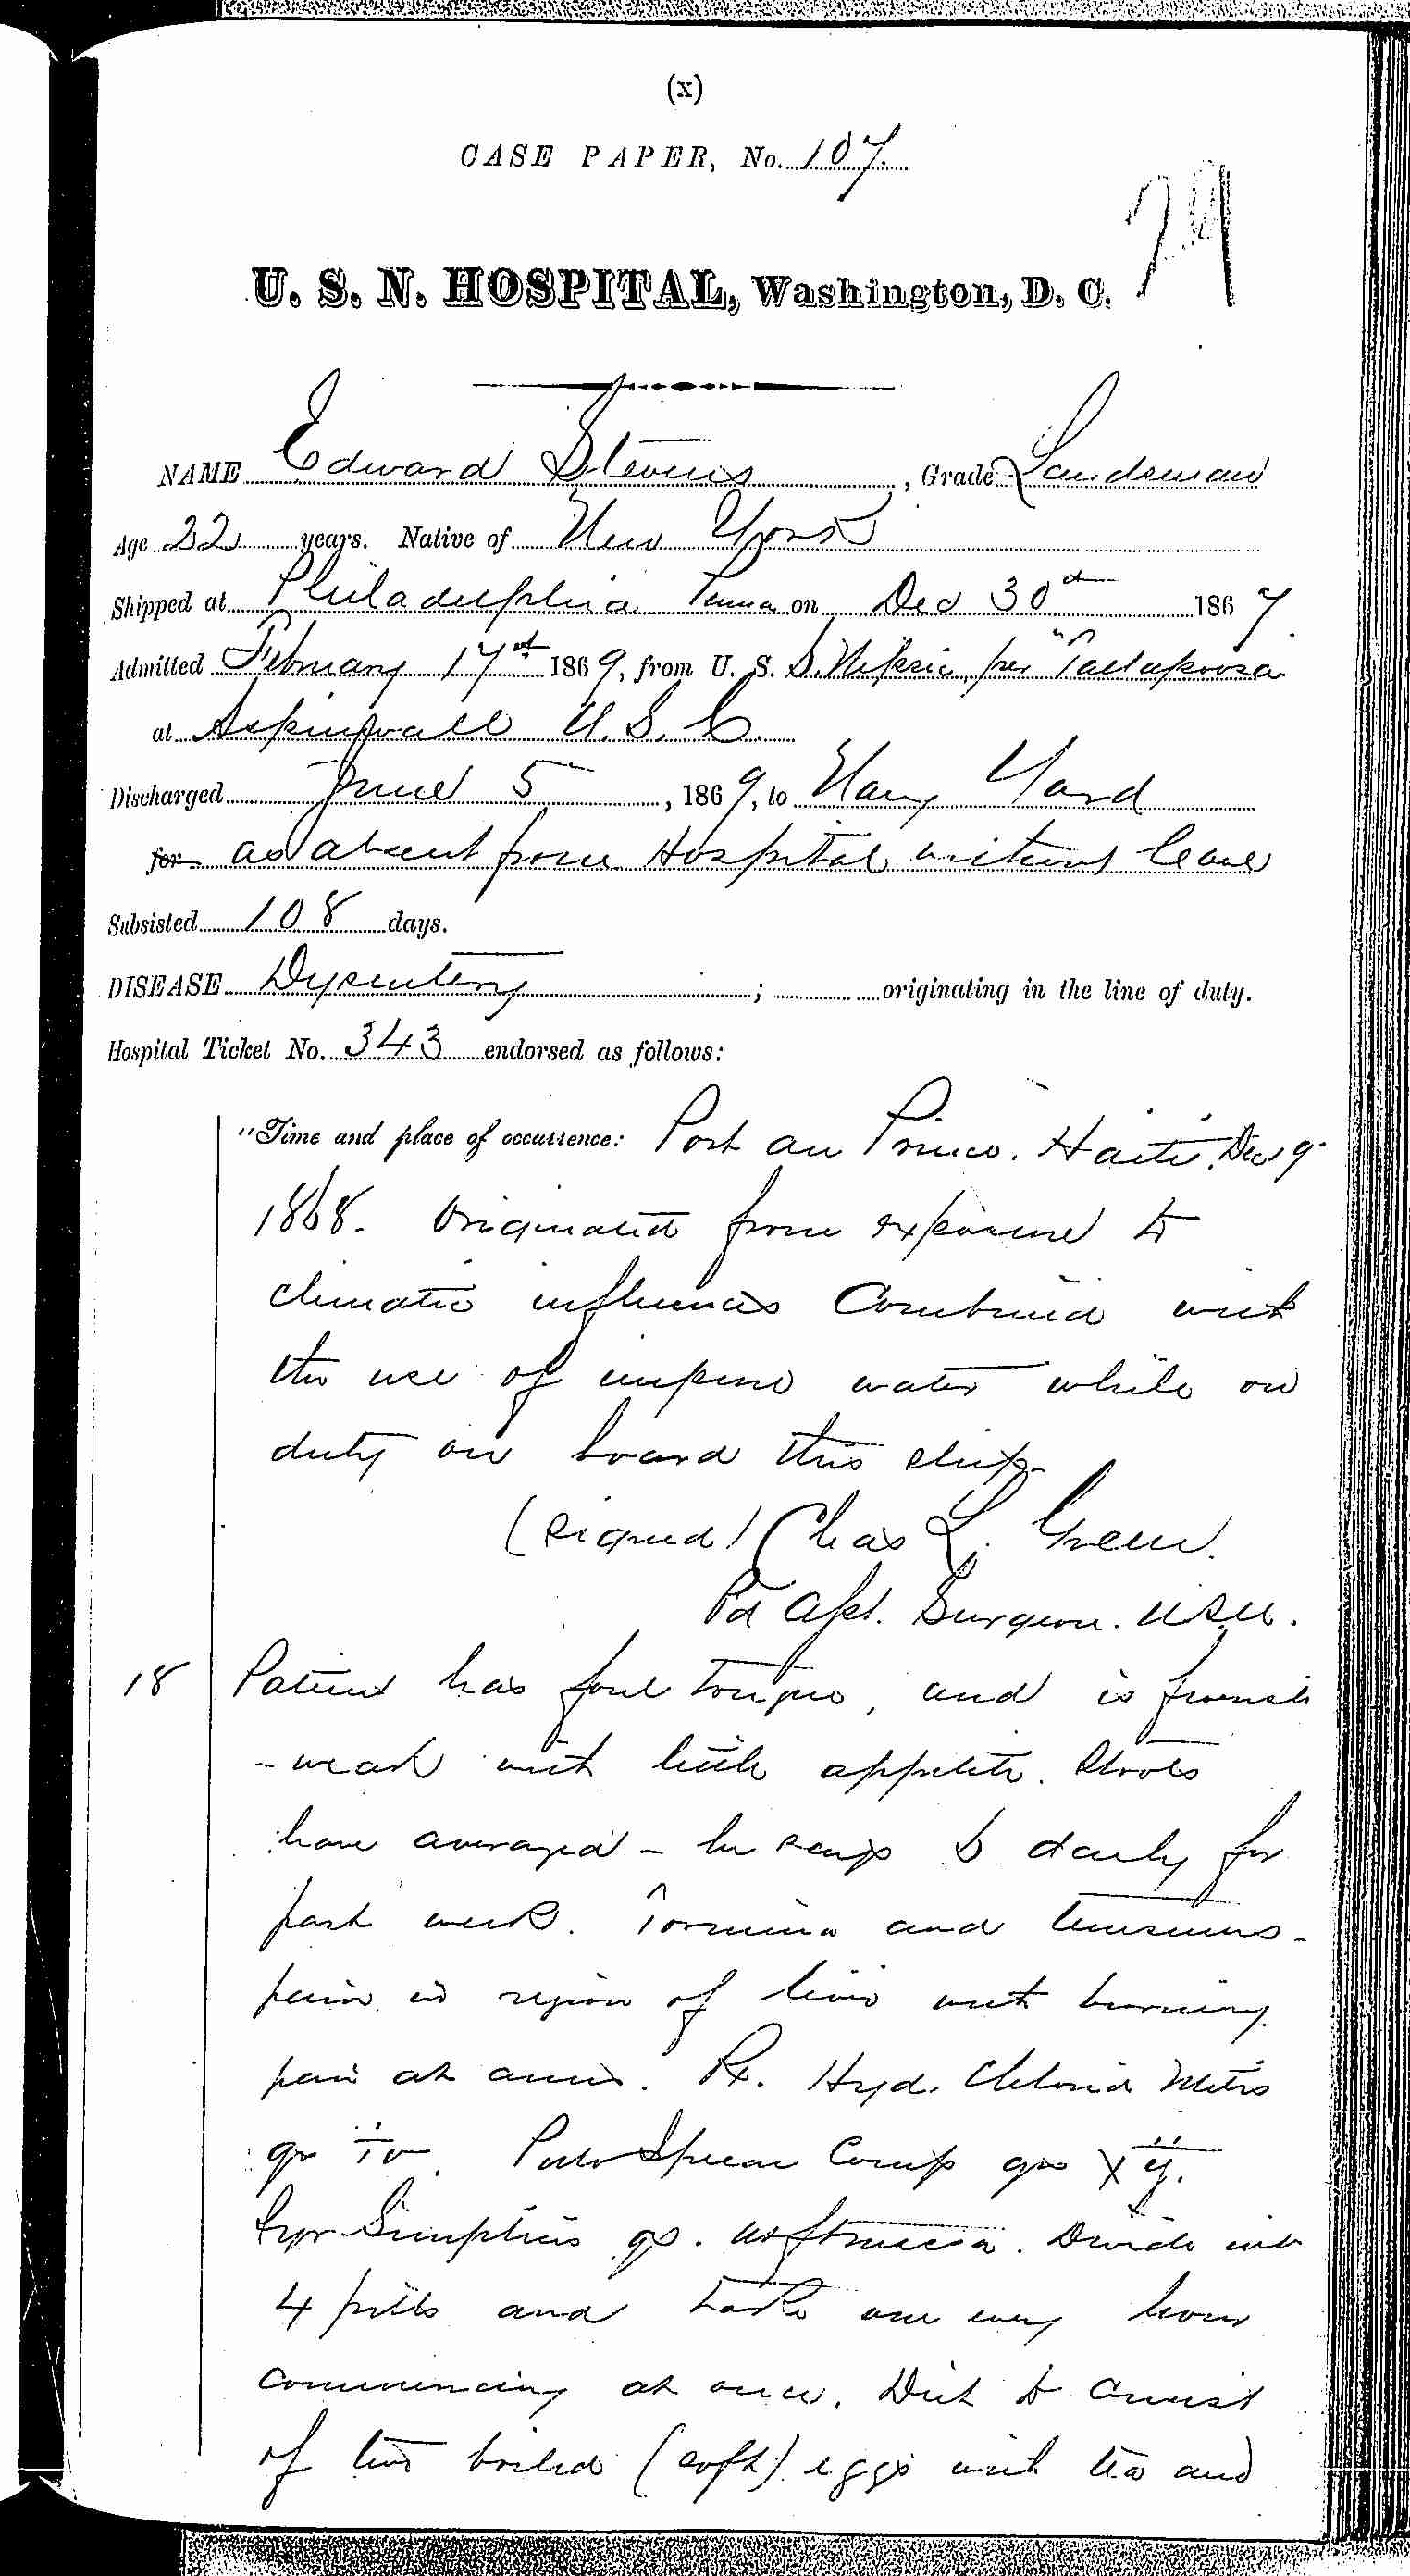 Entry for Edward Stevens (page 1 of 5) in the log Hospital Tickets and Case Papers - Naval Hospital - Washington, D.C. - 1868-69